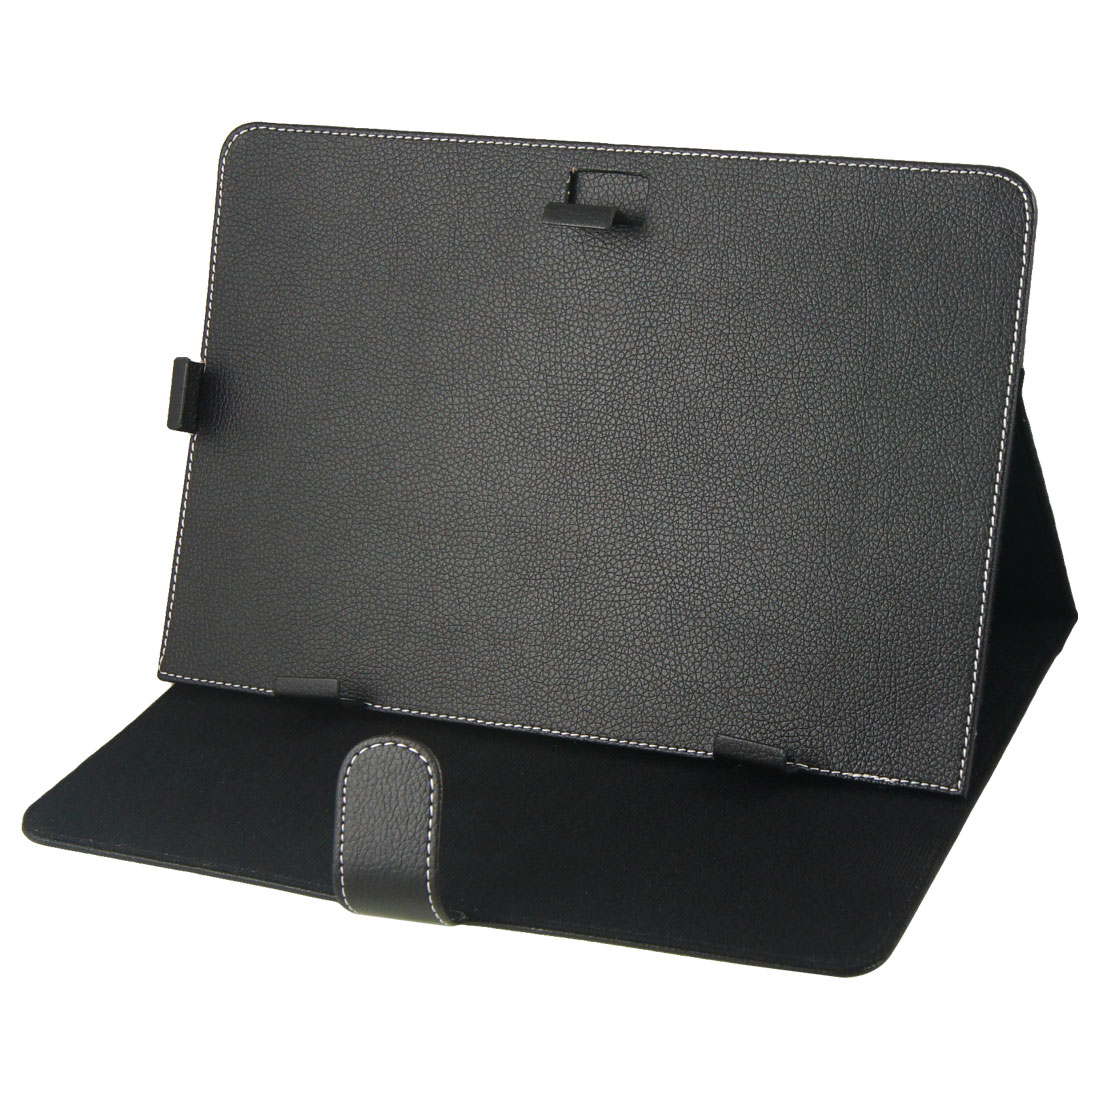 "Faux Leather Stand Computer Case Flip Cover Black for 10"" 10.1"" Android Tablet"